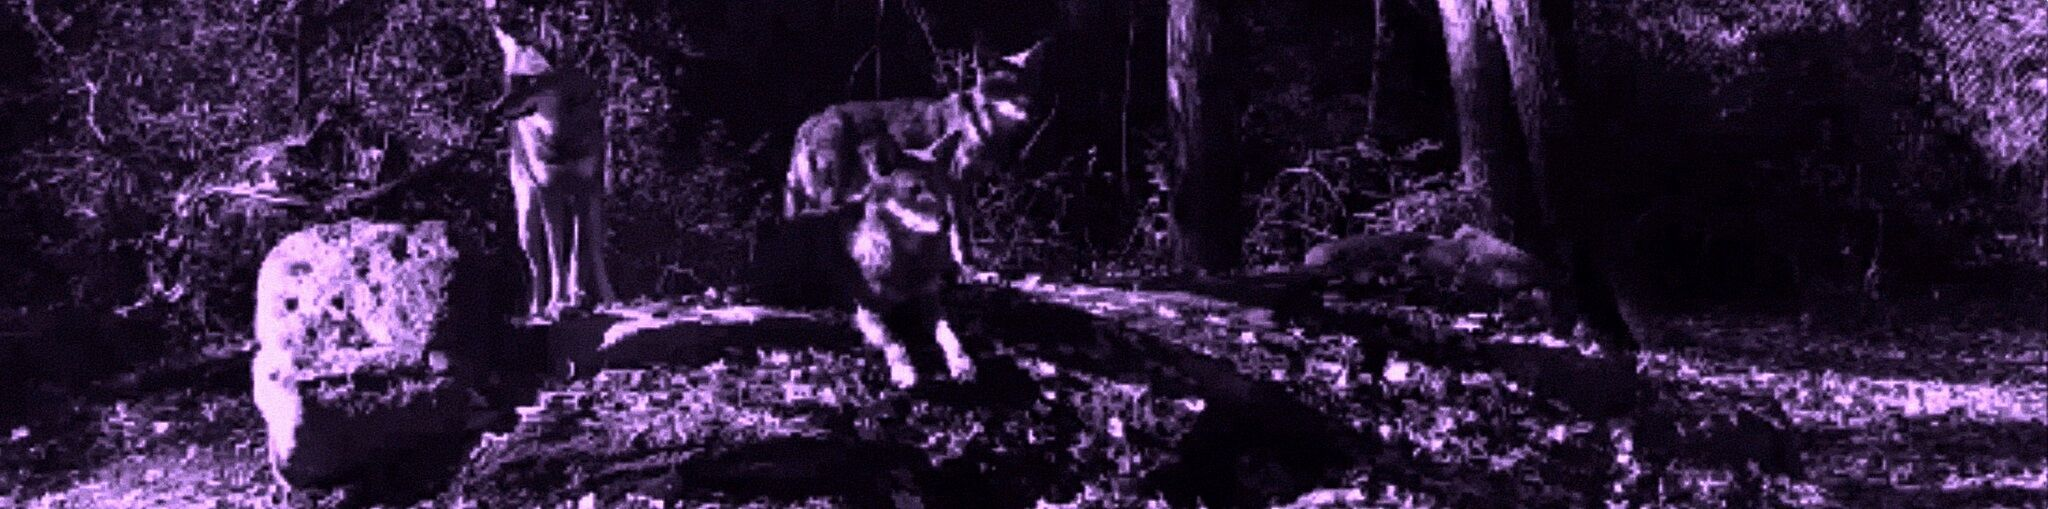 Purple-tinted video still featuring wolves